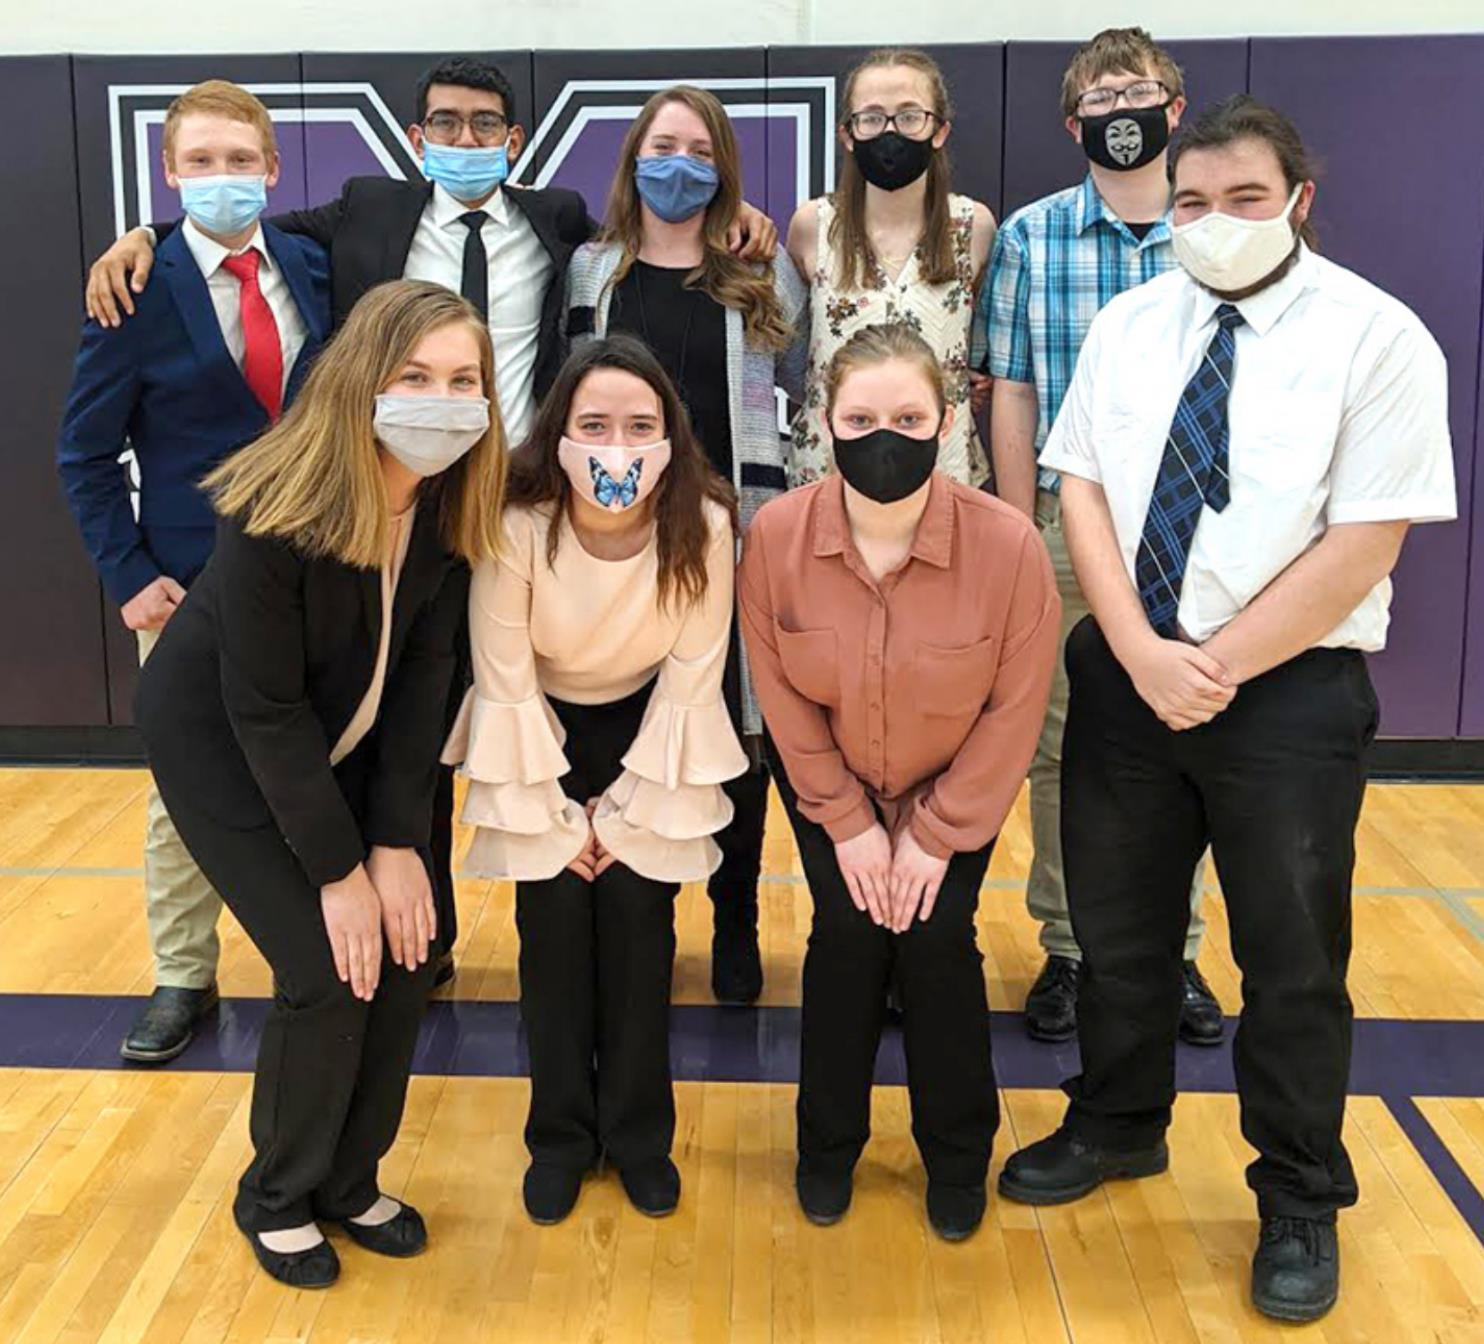 The Shelton speech team competed at the annual Minden meet last weekend. Team members included, front row, left to right, Skyler Summers, Breanna Plihal, Rose Fox, and Lane Demilt; and back row, Noah Summers, Jose Montanez, coach Leah Solko, Kiersten Benn